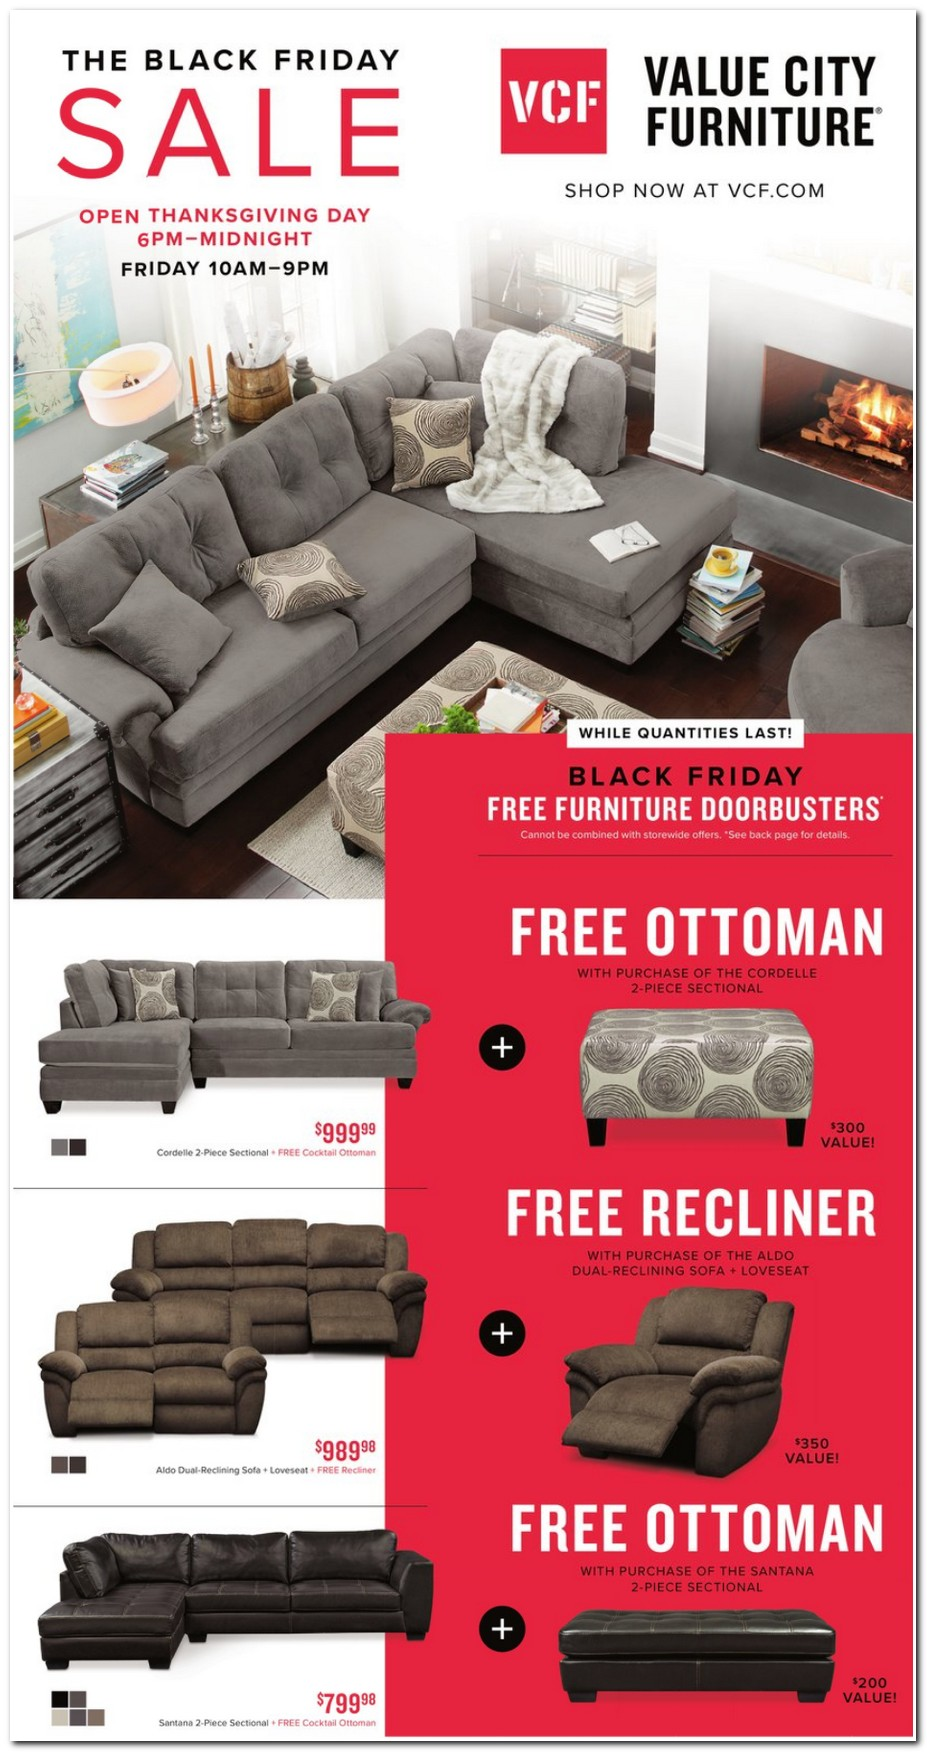 Value City Furniture Black Friday Ads Sales Deals 2017 CouponShy